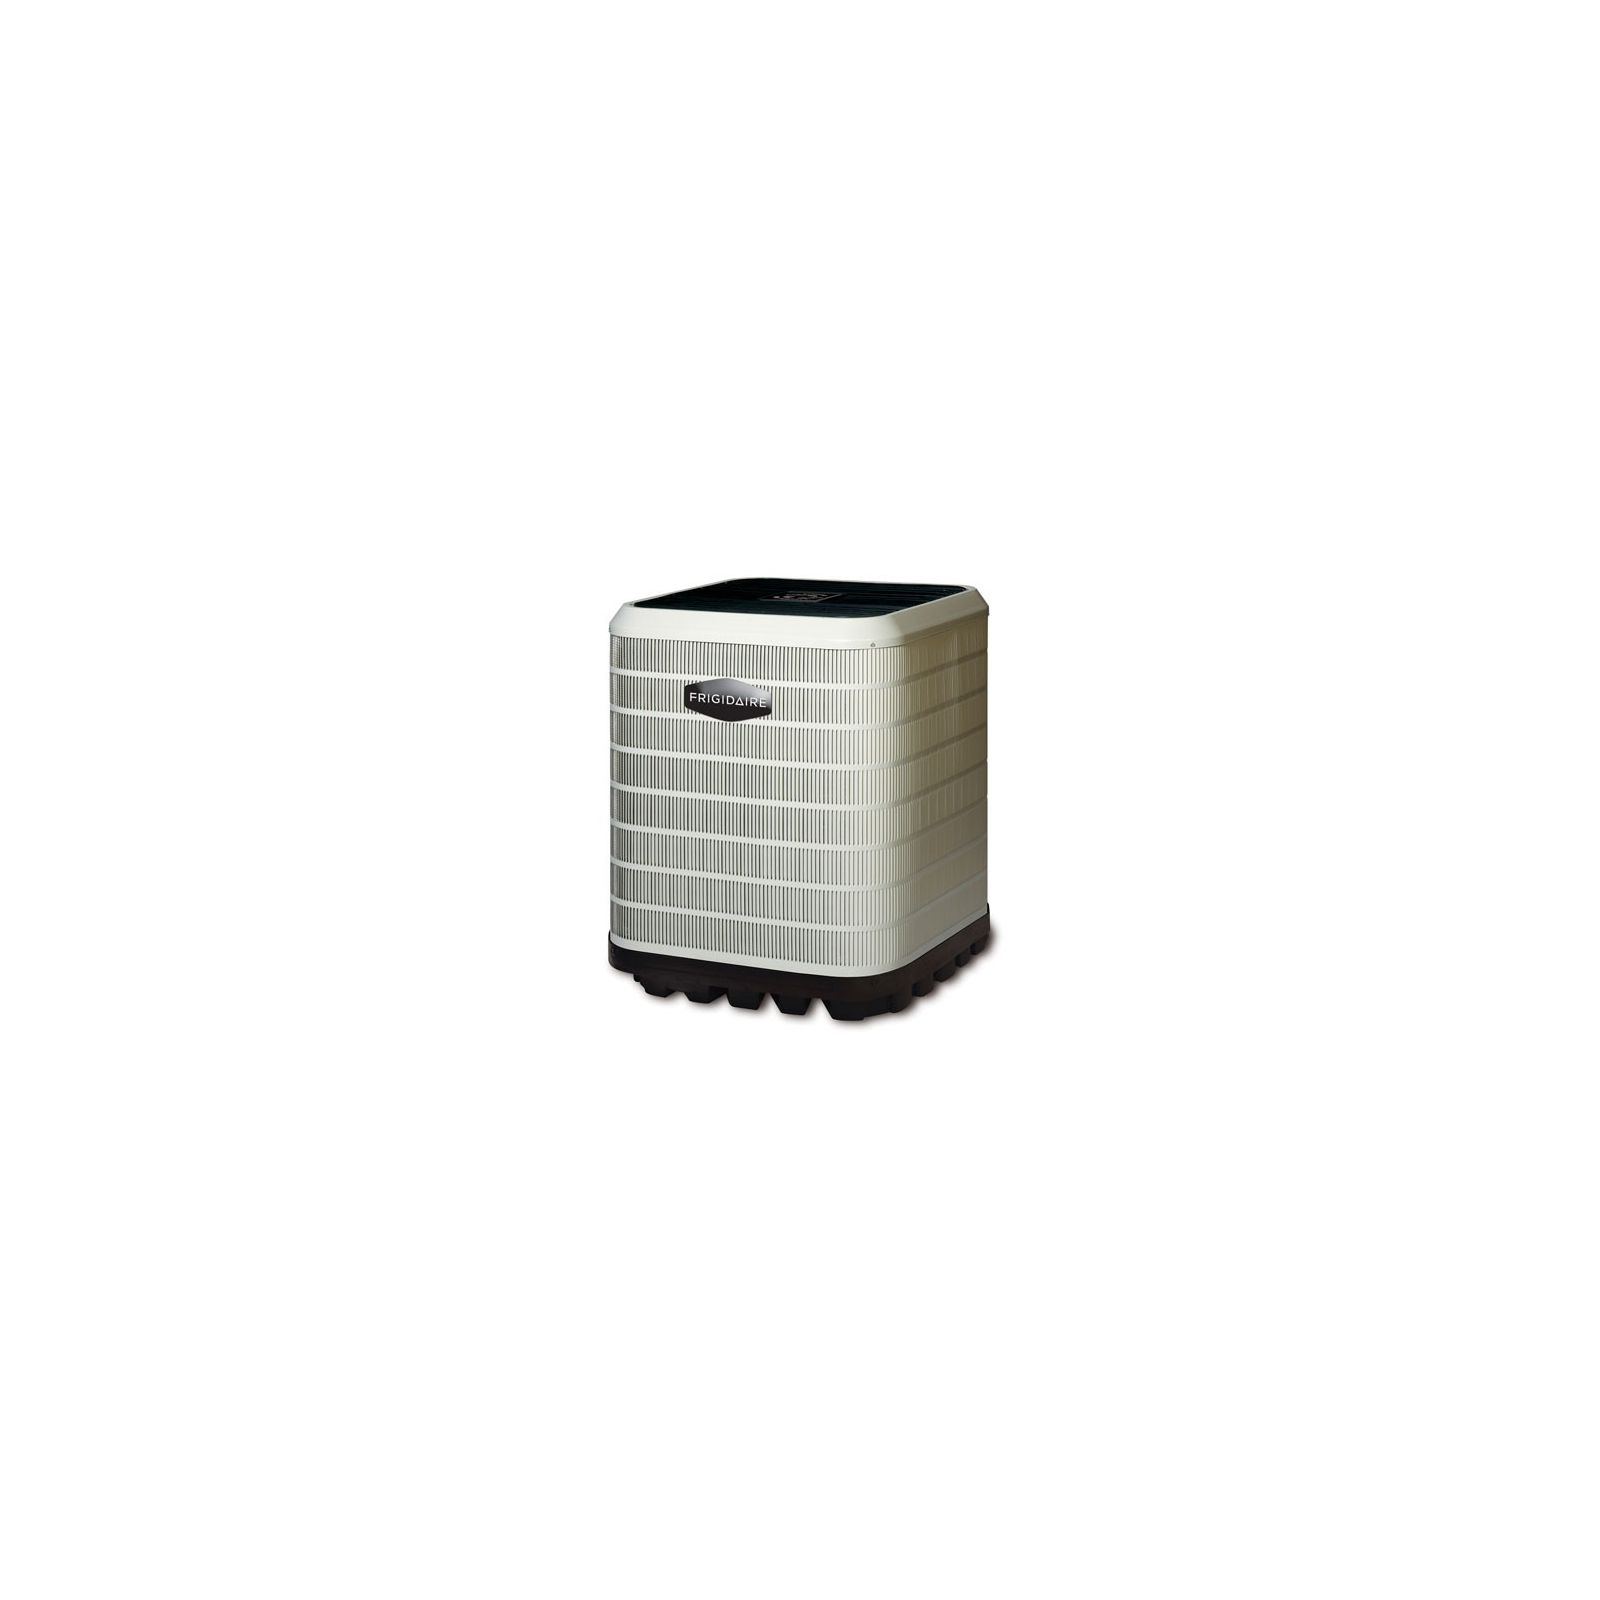 Frigidaire 921984F - FT4BE036KA - 3 Ton 14 SEER High Efficiency Heat Pump, R410A